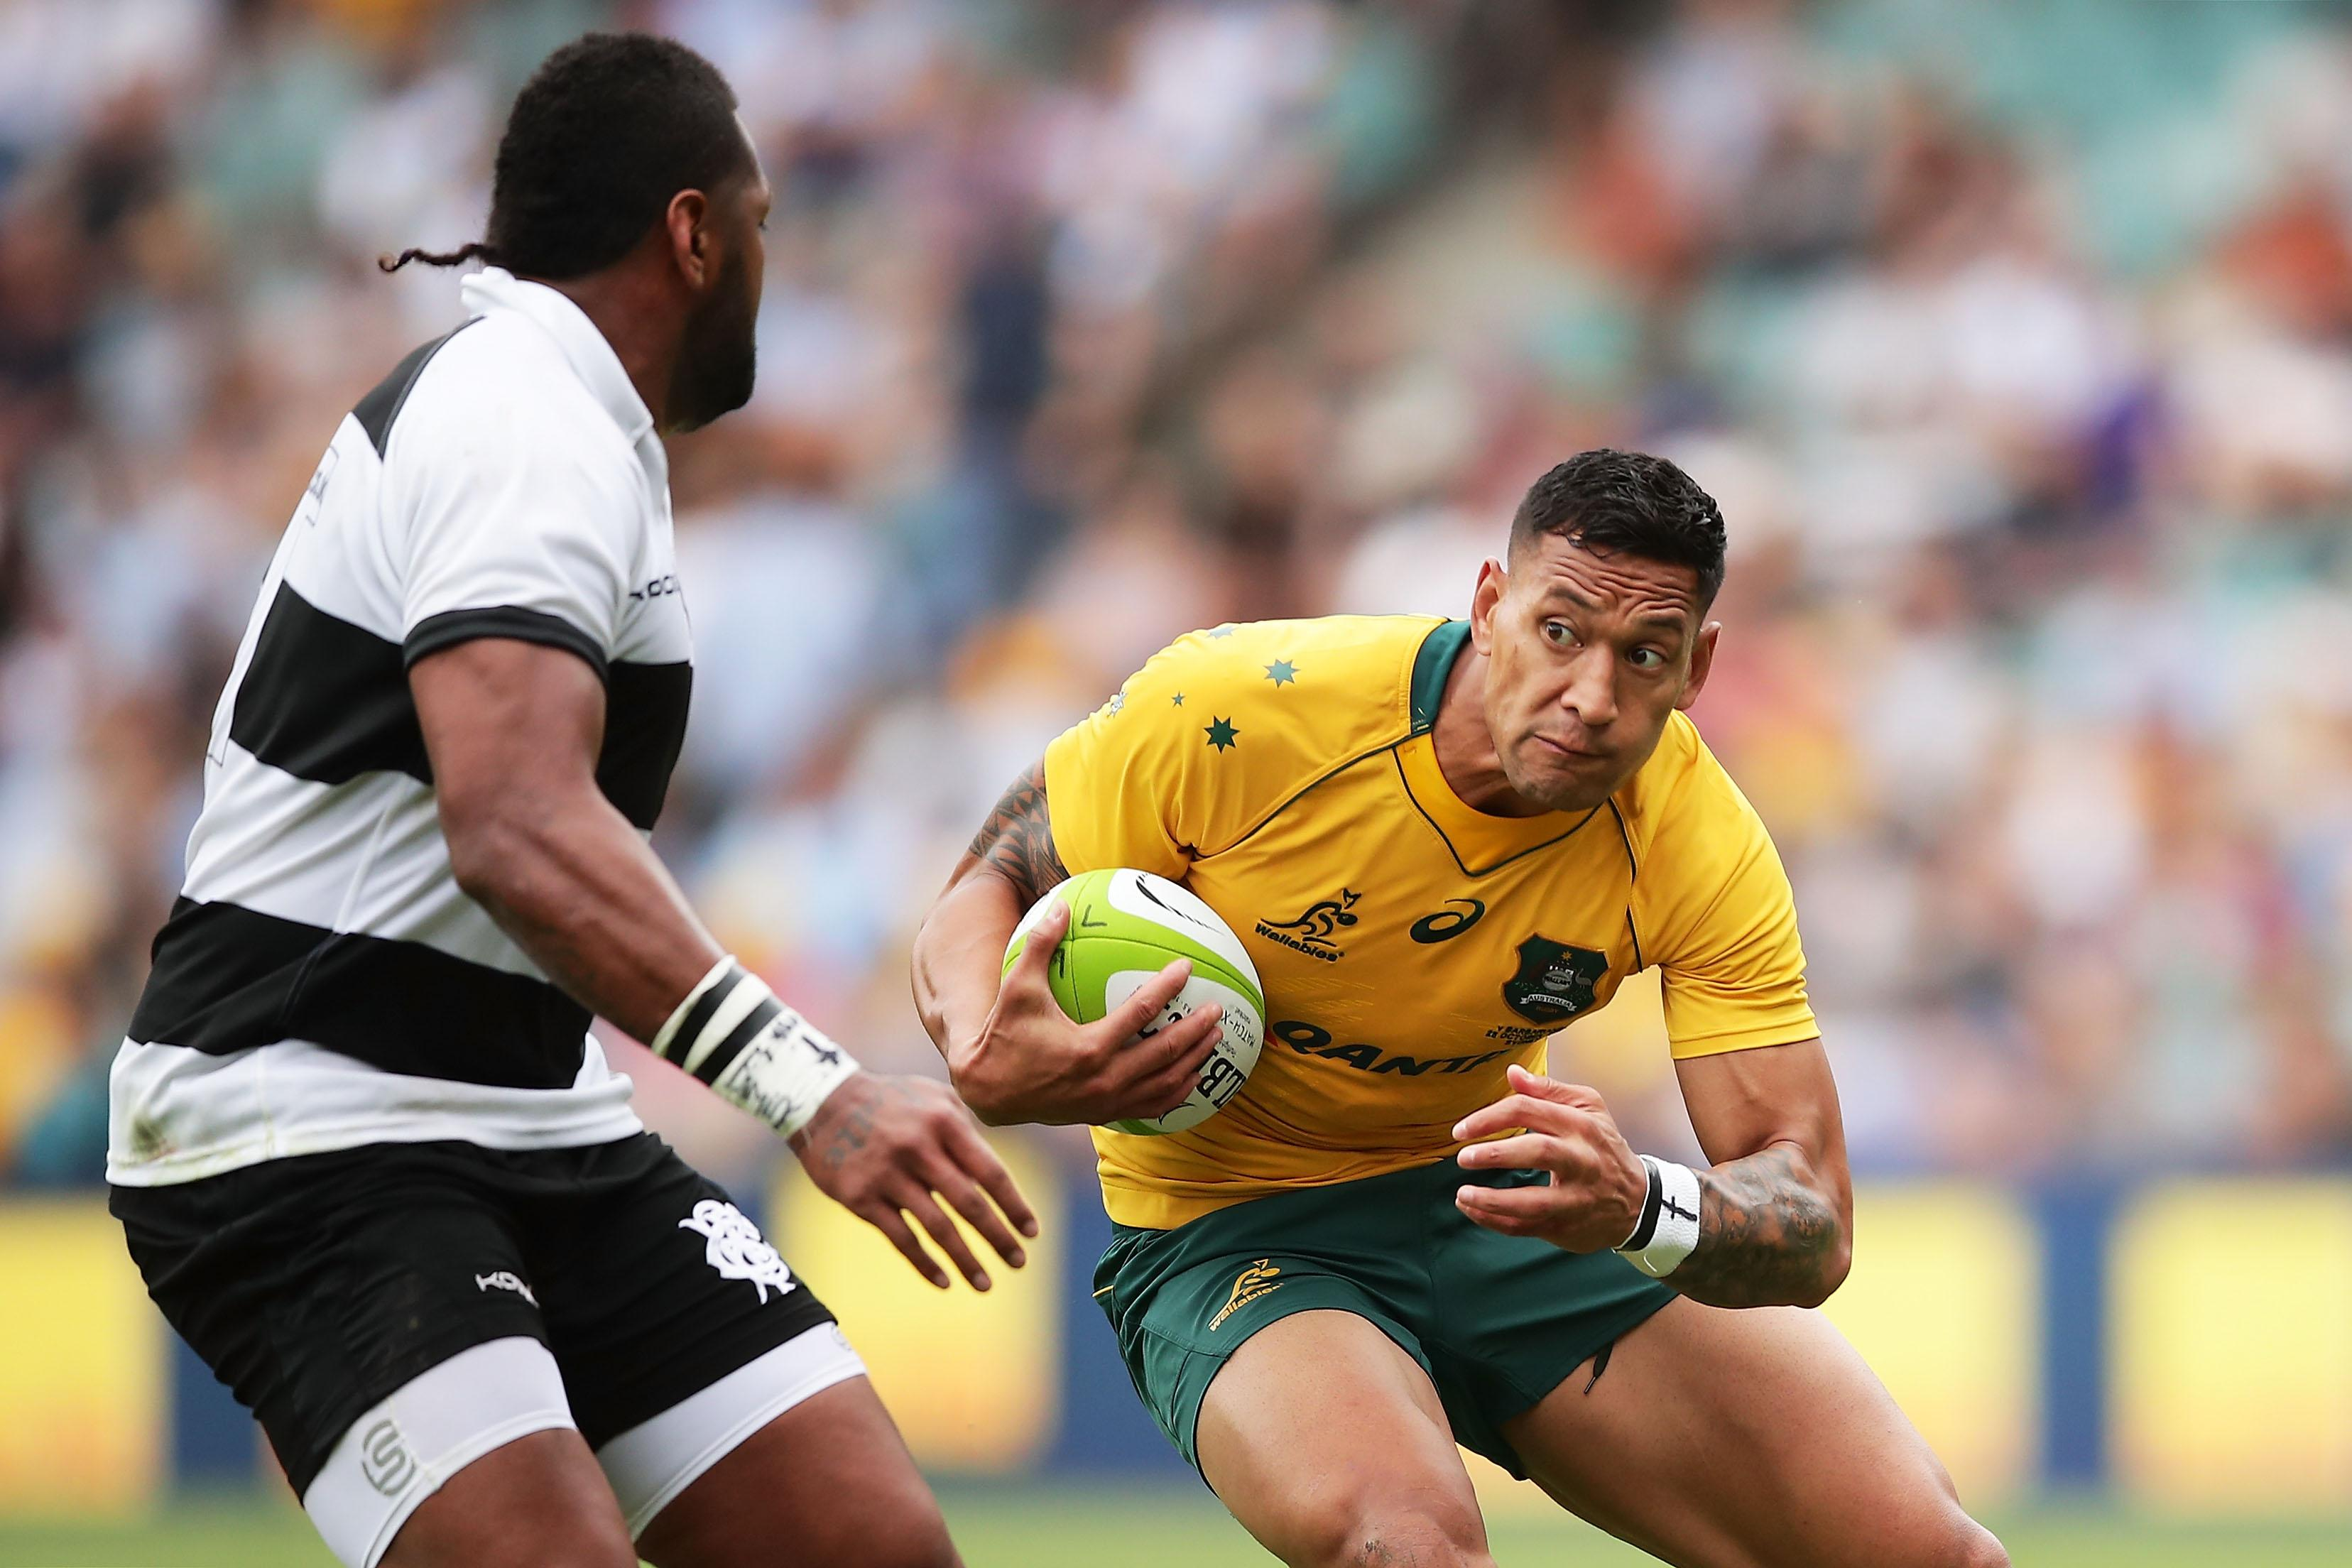 Israel Folau has previously spoken out against gay marriage